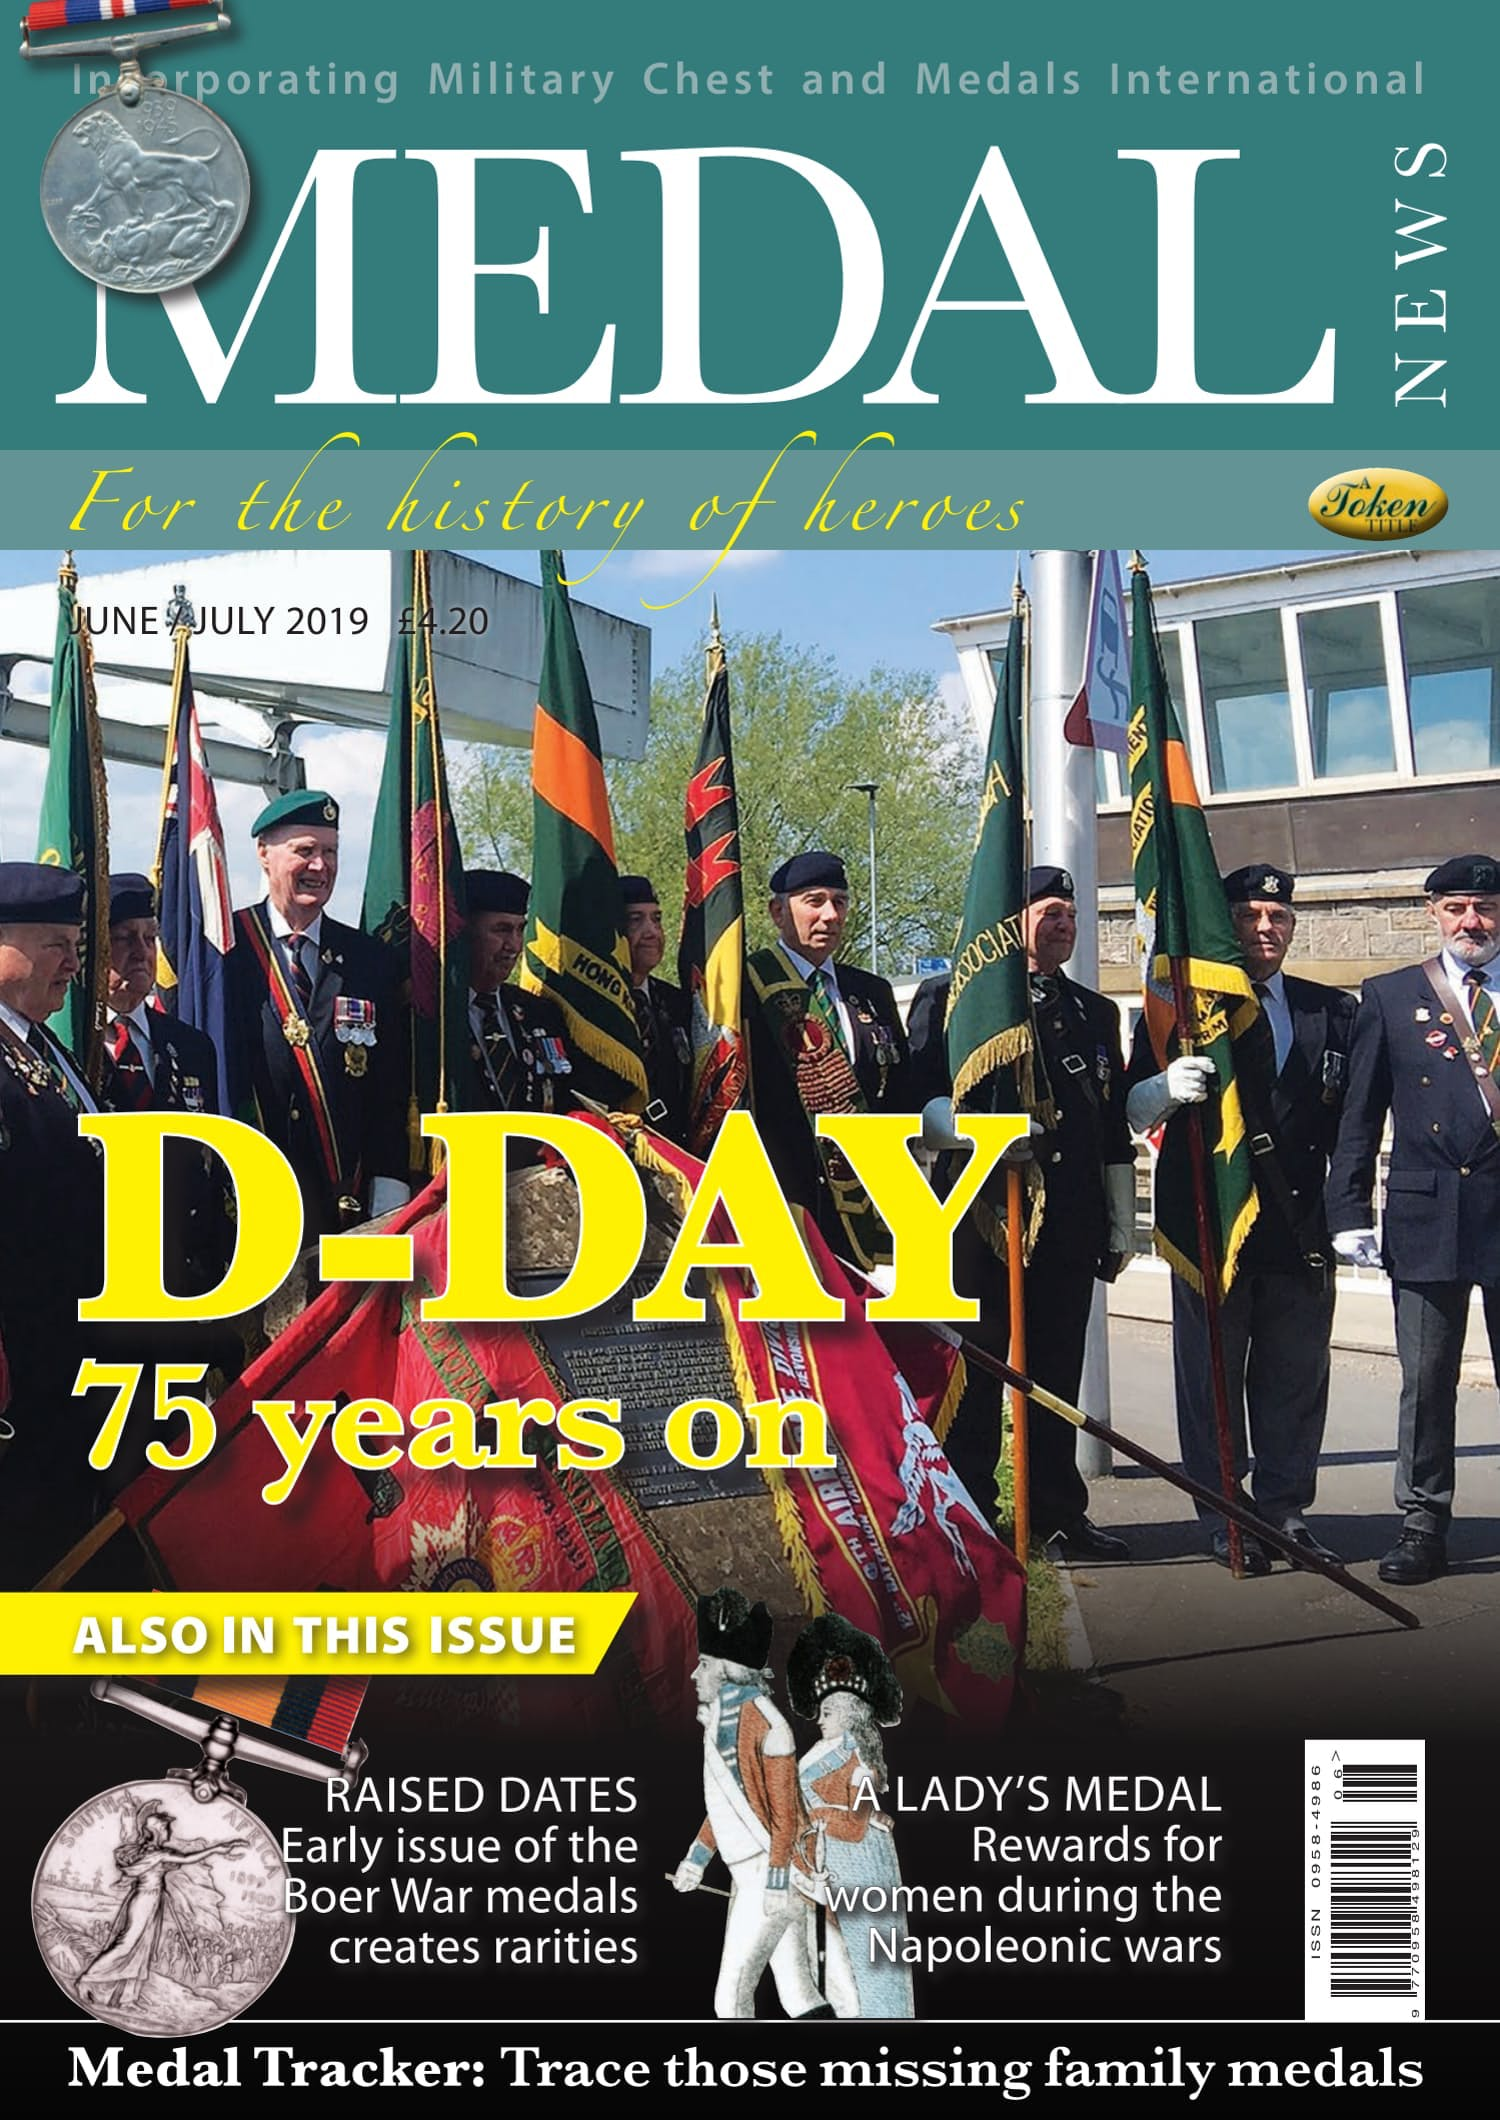 Front cover of 'D-Day', Medal News June 2019, Volume 57, Number 6 by Token Publishing